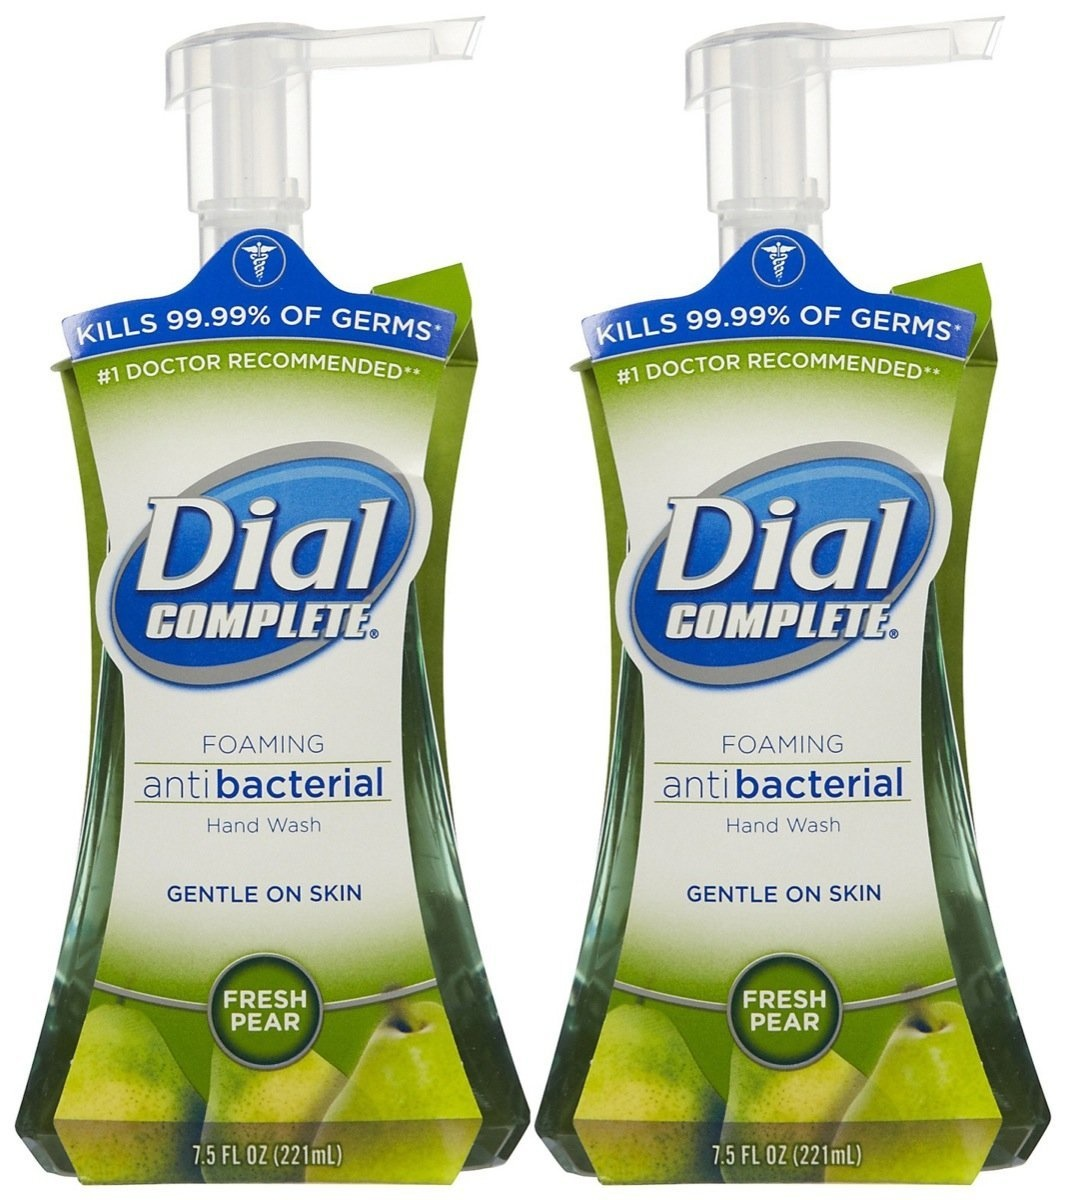 Dial Complete Foaming Anti Bacterial Hand Wash  Pear 7.5 Fl OZ